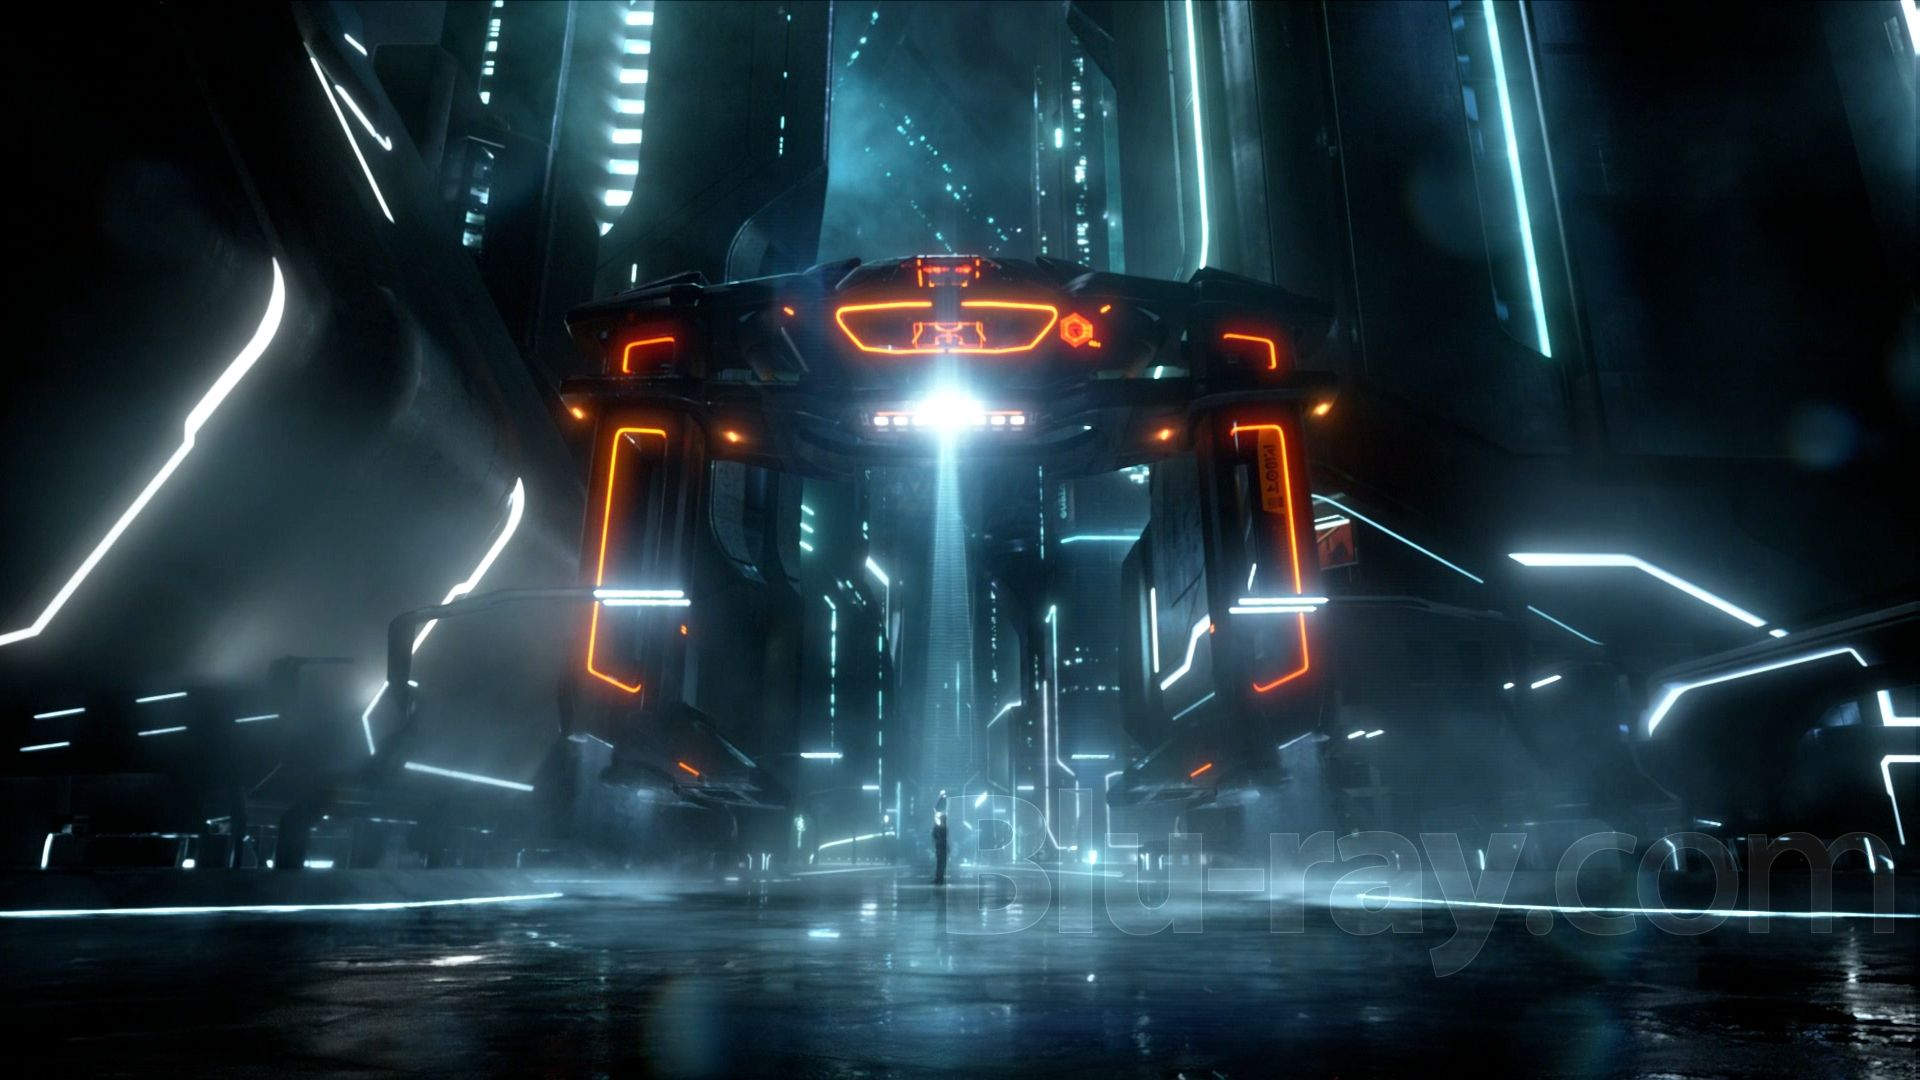 Tron 3 Title May Have Accidentally Been Revealed by